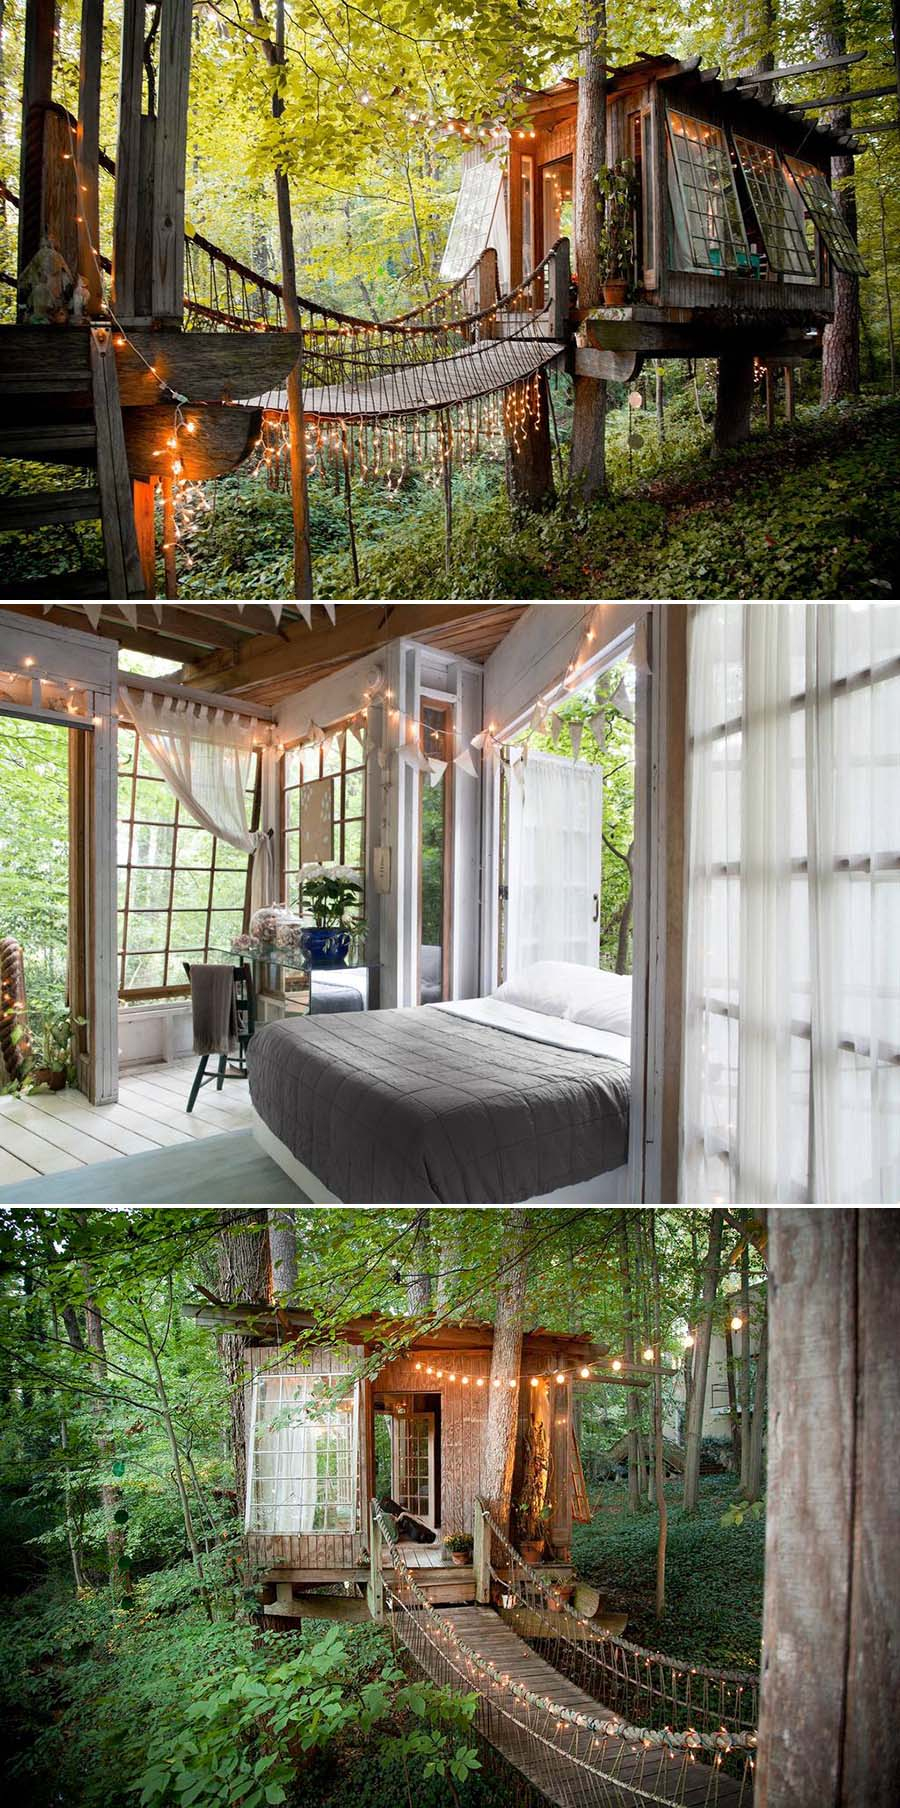 Cheap deals on Treehouse Airbnb in USA